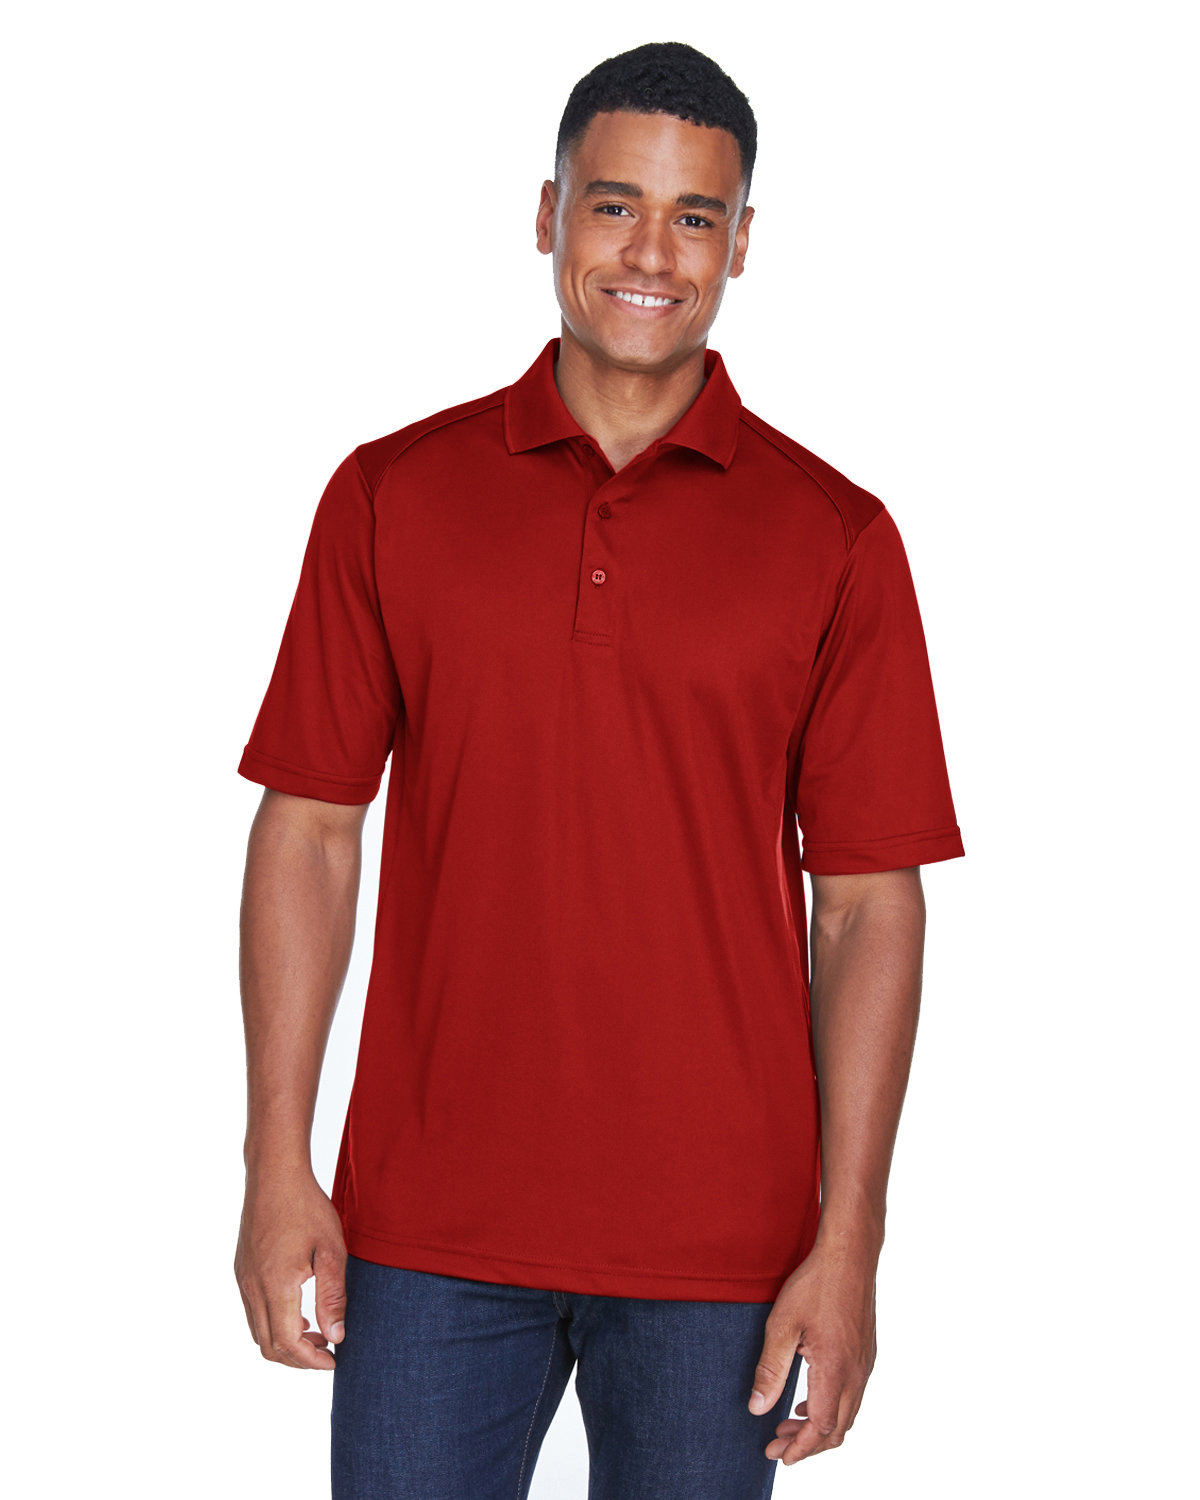 Extreme Men's Eperformance™ Shield Snag Protection Short-Sleeve Polo CLASSIC RED